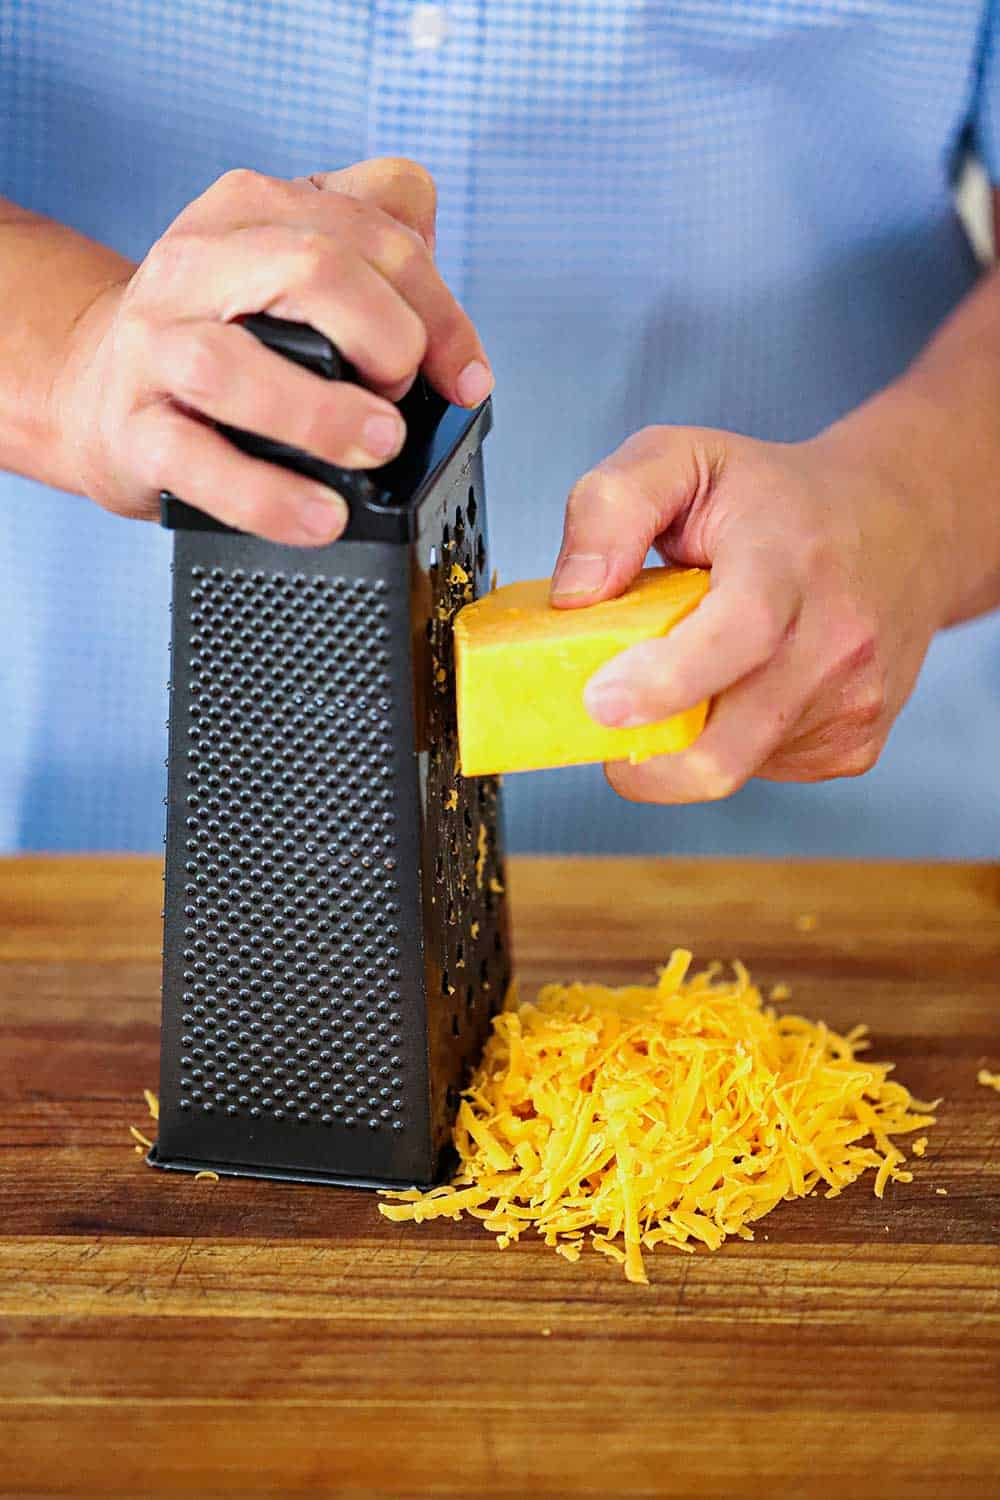 A hand shredding a block of cheddar cheese on a box grater.